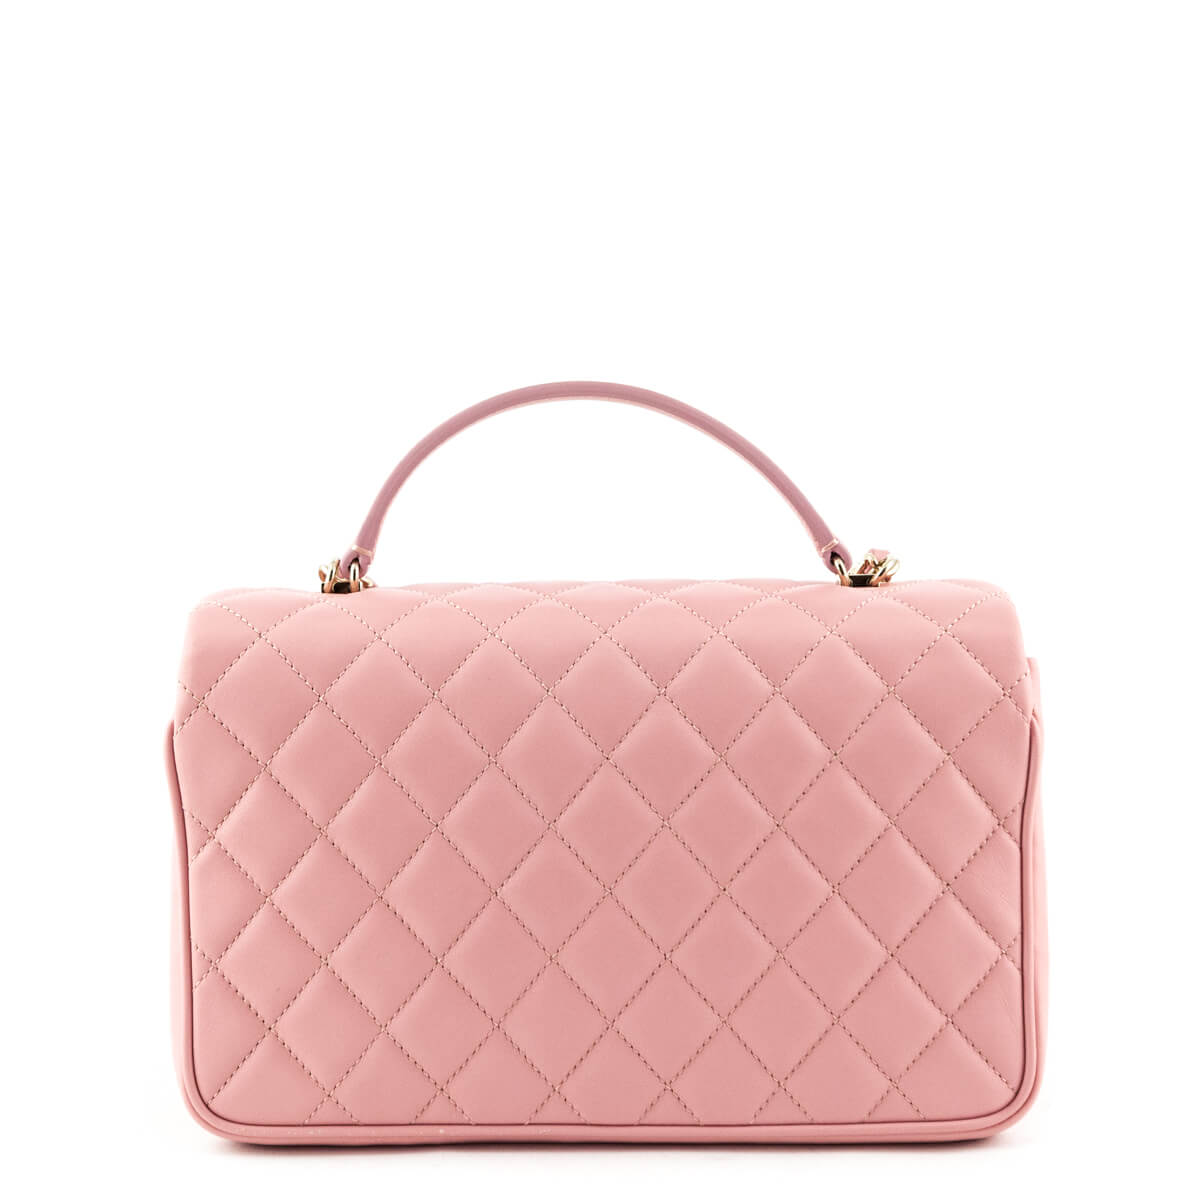 edd82b18b8c037 ... Chanel Pink Quilted Lambskin Top Handle Flap Bag - LOVE that BAG -  Preowned Authentic Designer ...